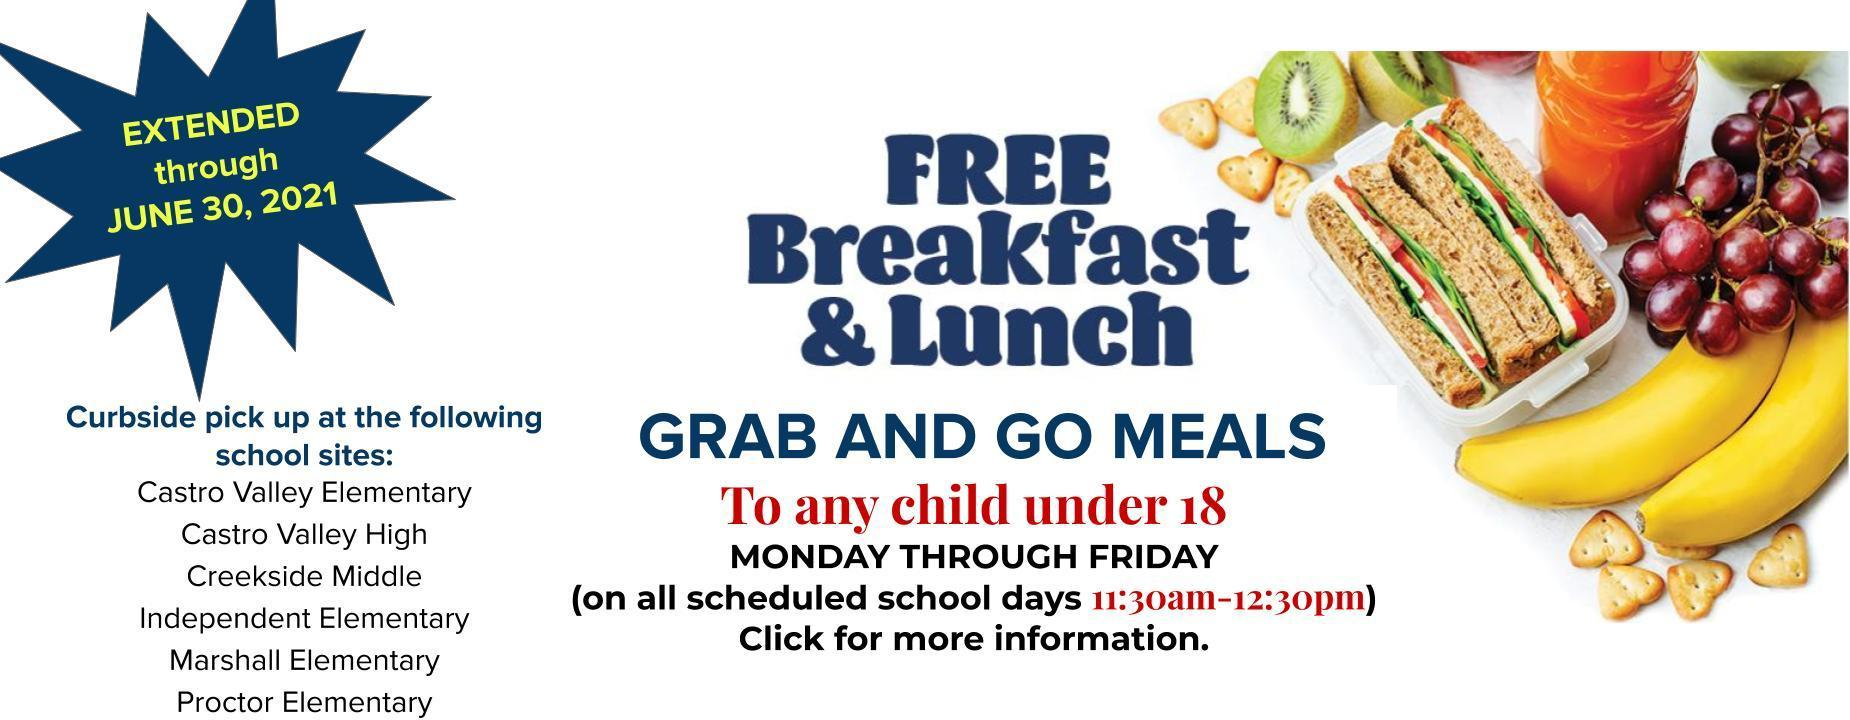 grab and go meal information